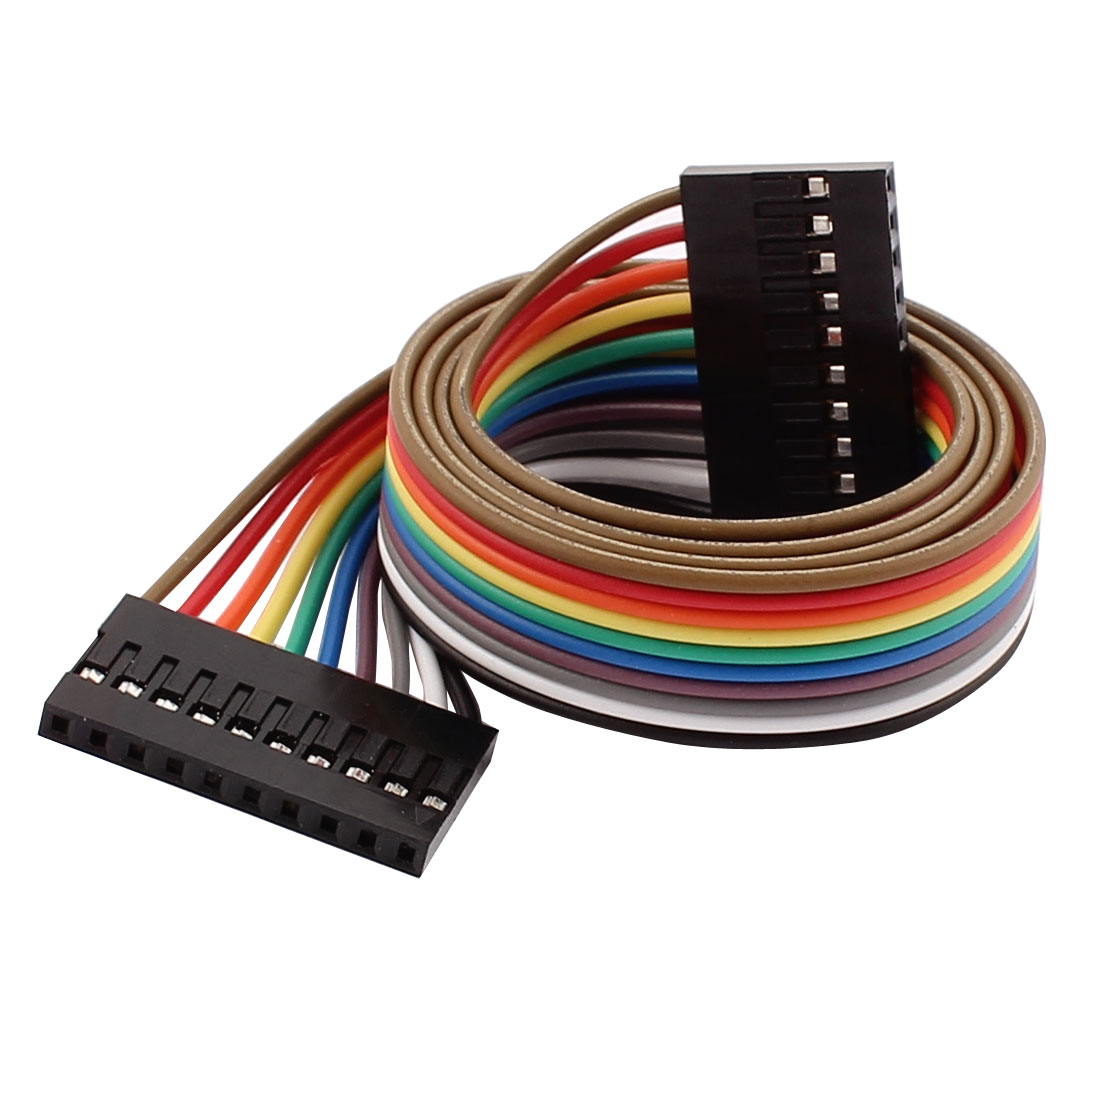 5 Pcs 2.54mm Pitch 10P Female Breadboard Double Head Jumper Wire Cable 50cm Long